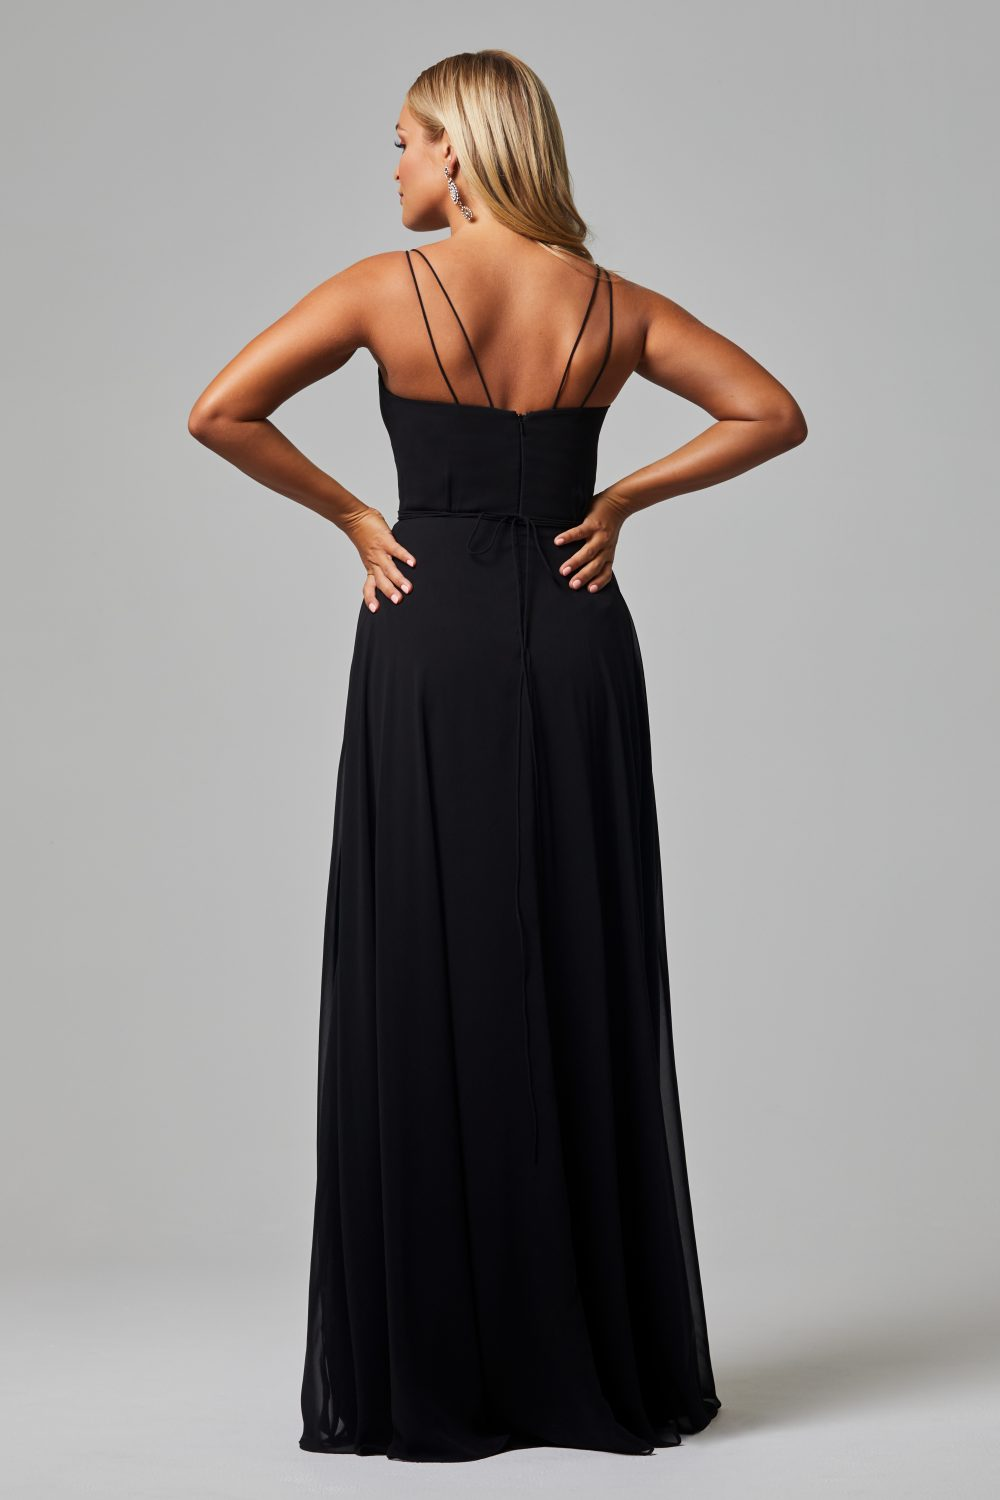 Freda Bridesmaid Dress BLACK back